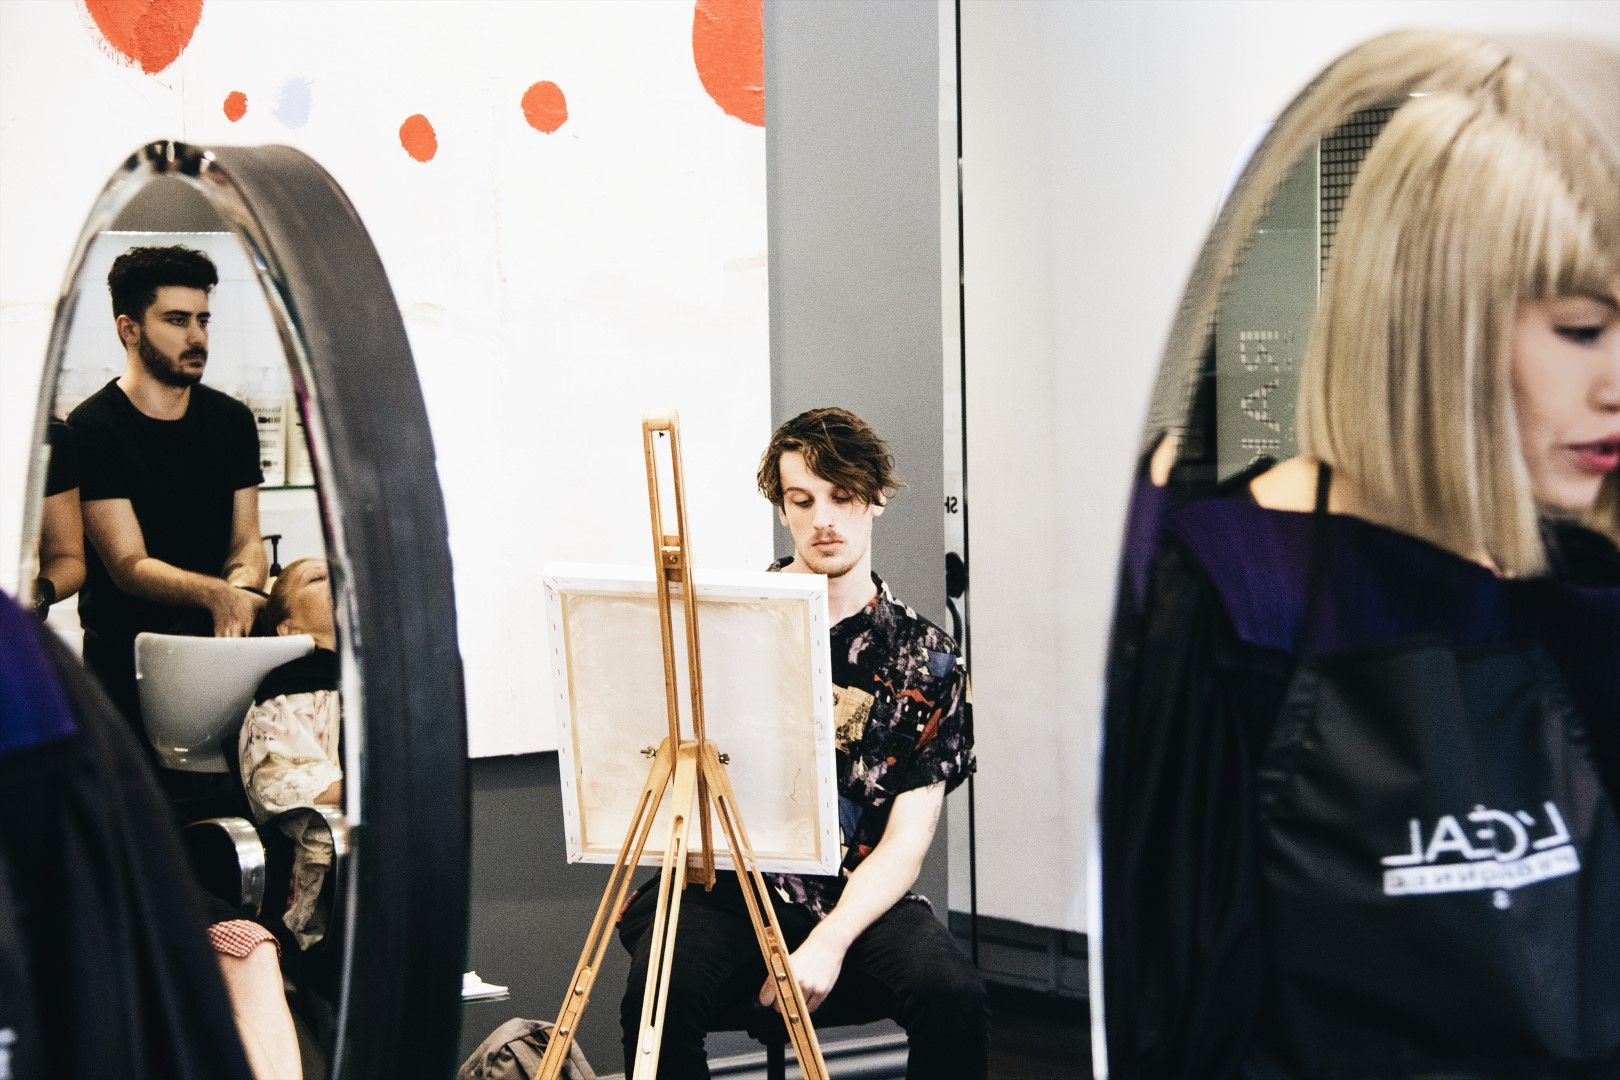 An artistic shot of artist Brendan Hartnett at work, with Style Director Pasquale and Stylist Hanae reflected